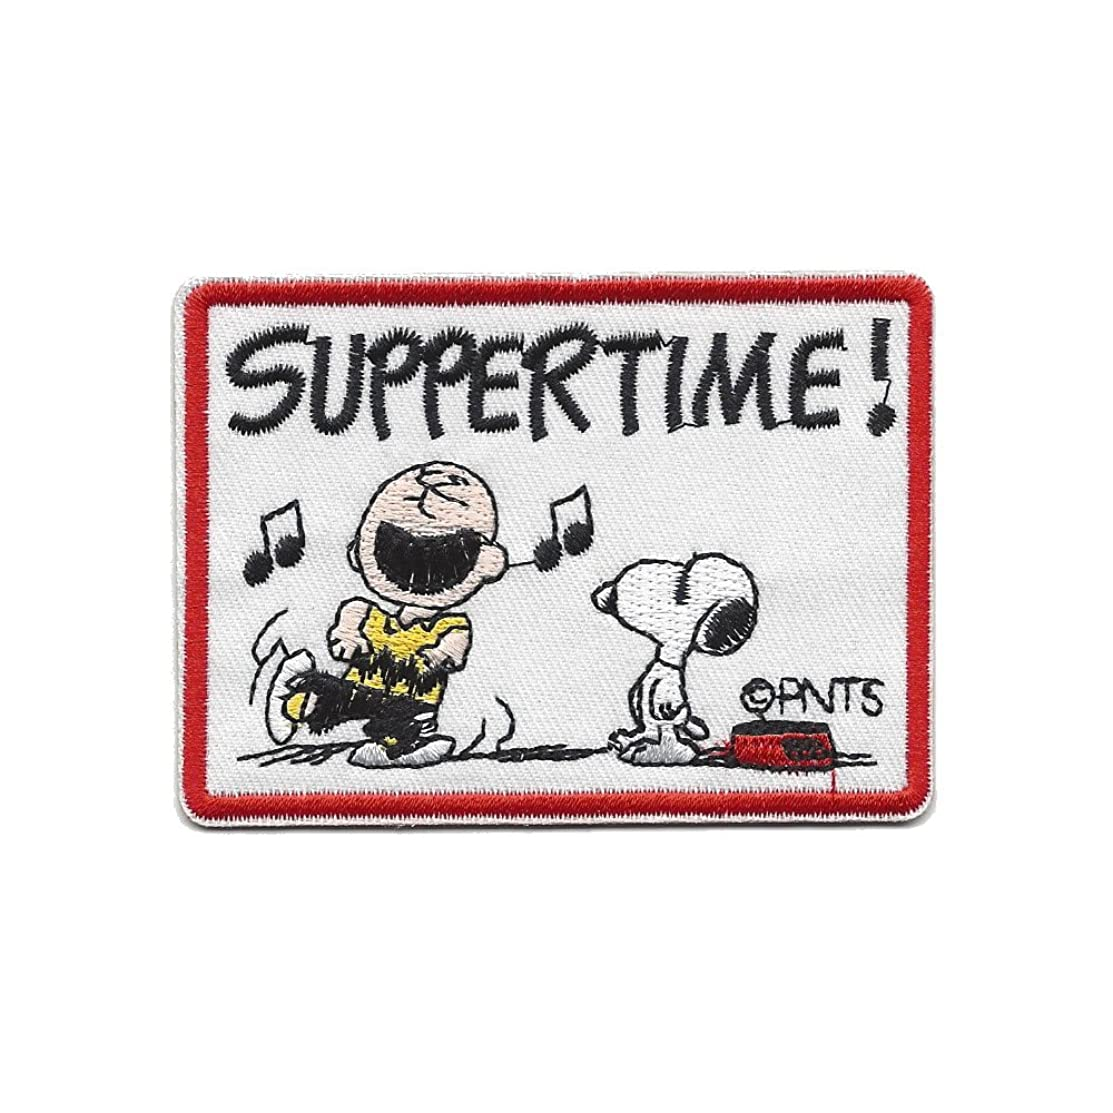 Peanuts Suppertime Iron On Patch Fabric Applique Motif Decal 3.3 x 2.4 inches (8.5 x 6.5 cm)